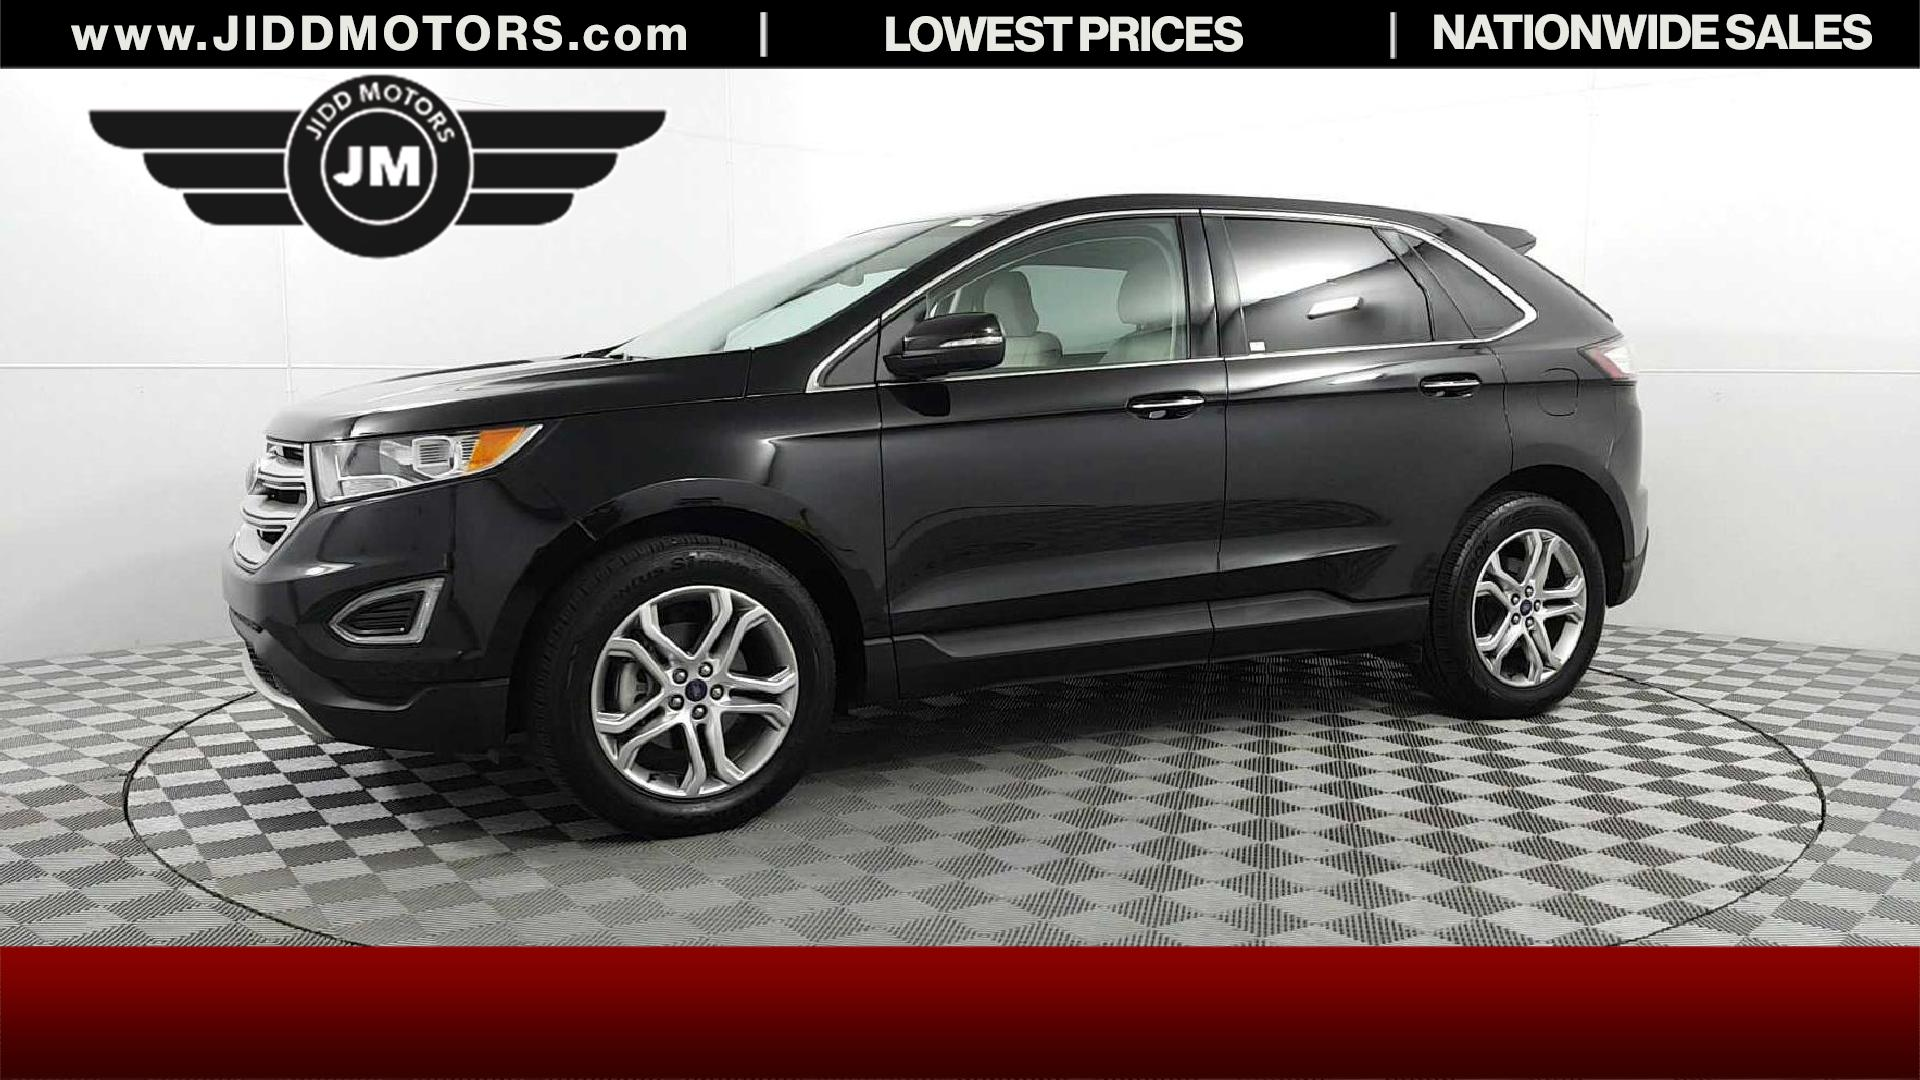 Which Varies Based On Applicants Credit As Well As The Vehicle Posted Sale Price Does Not Include Tax Title Doc Fees And Dealer Installed Options